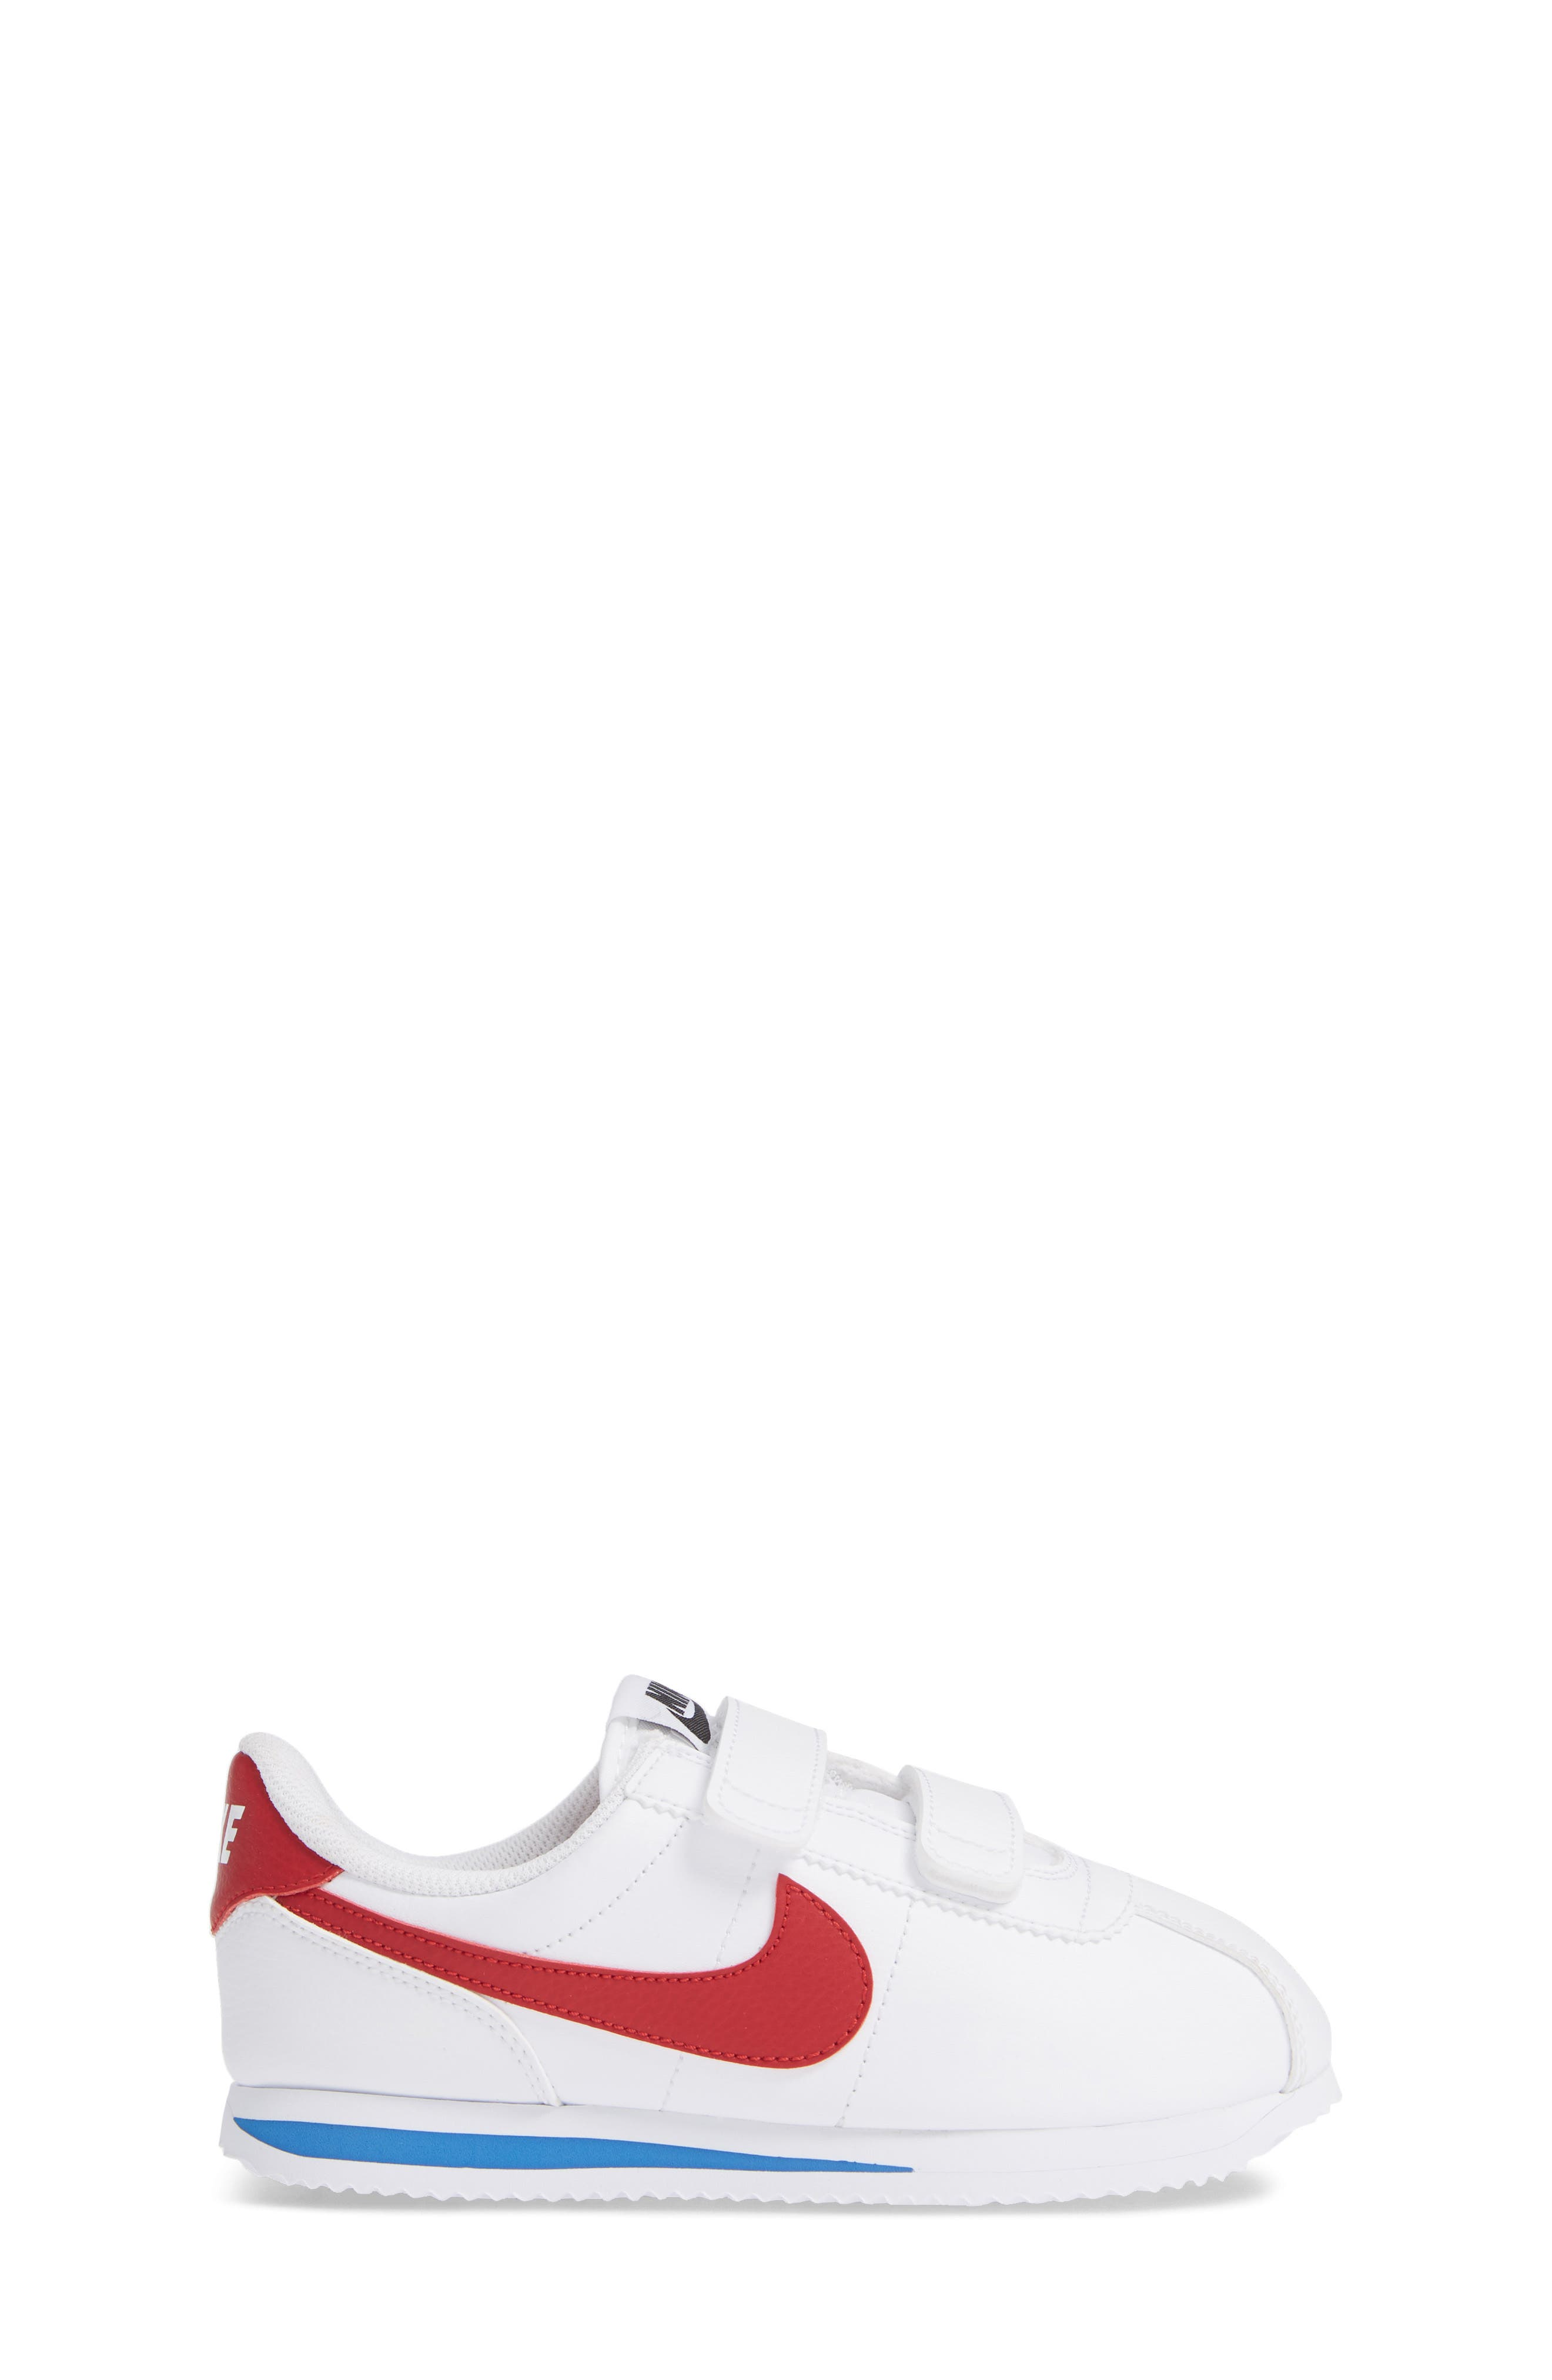 NIKE,                             Cortez Basic SL Sneaker,                             Alternate thumbnail 3, color,                             WHITE/ VARSITY RED/ BLACK